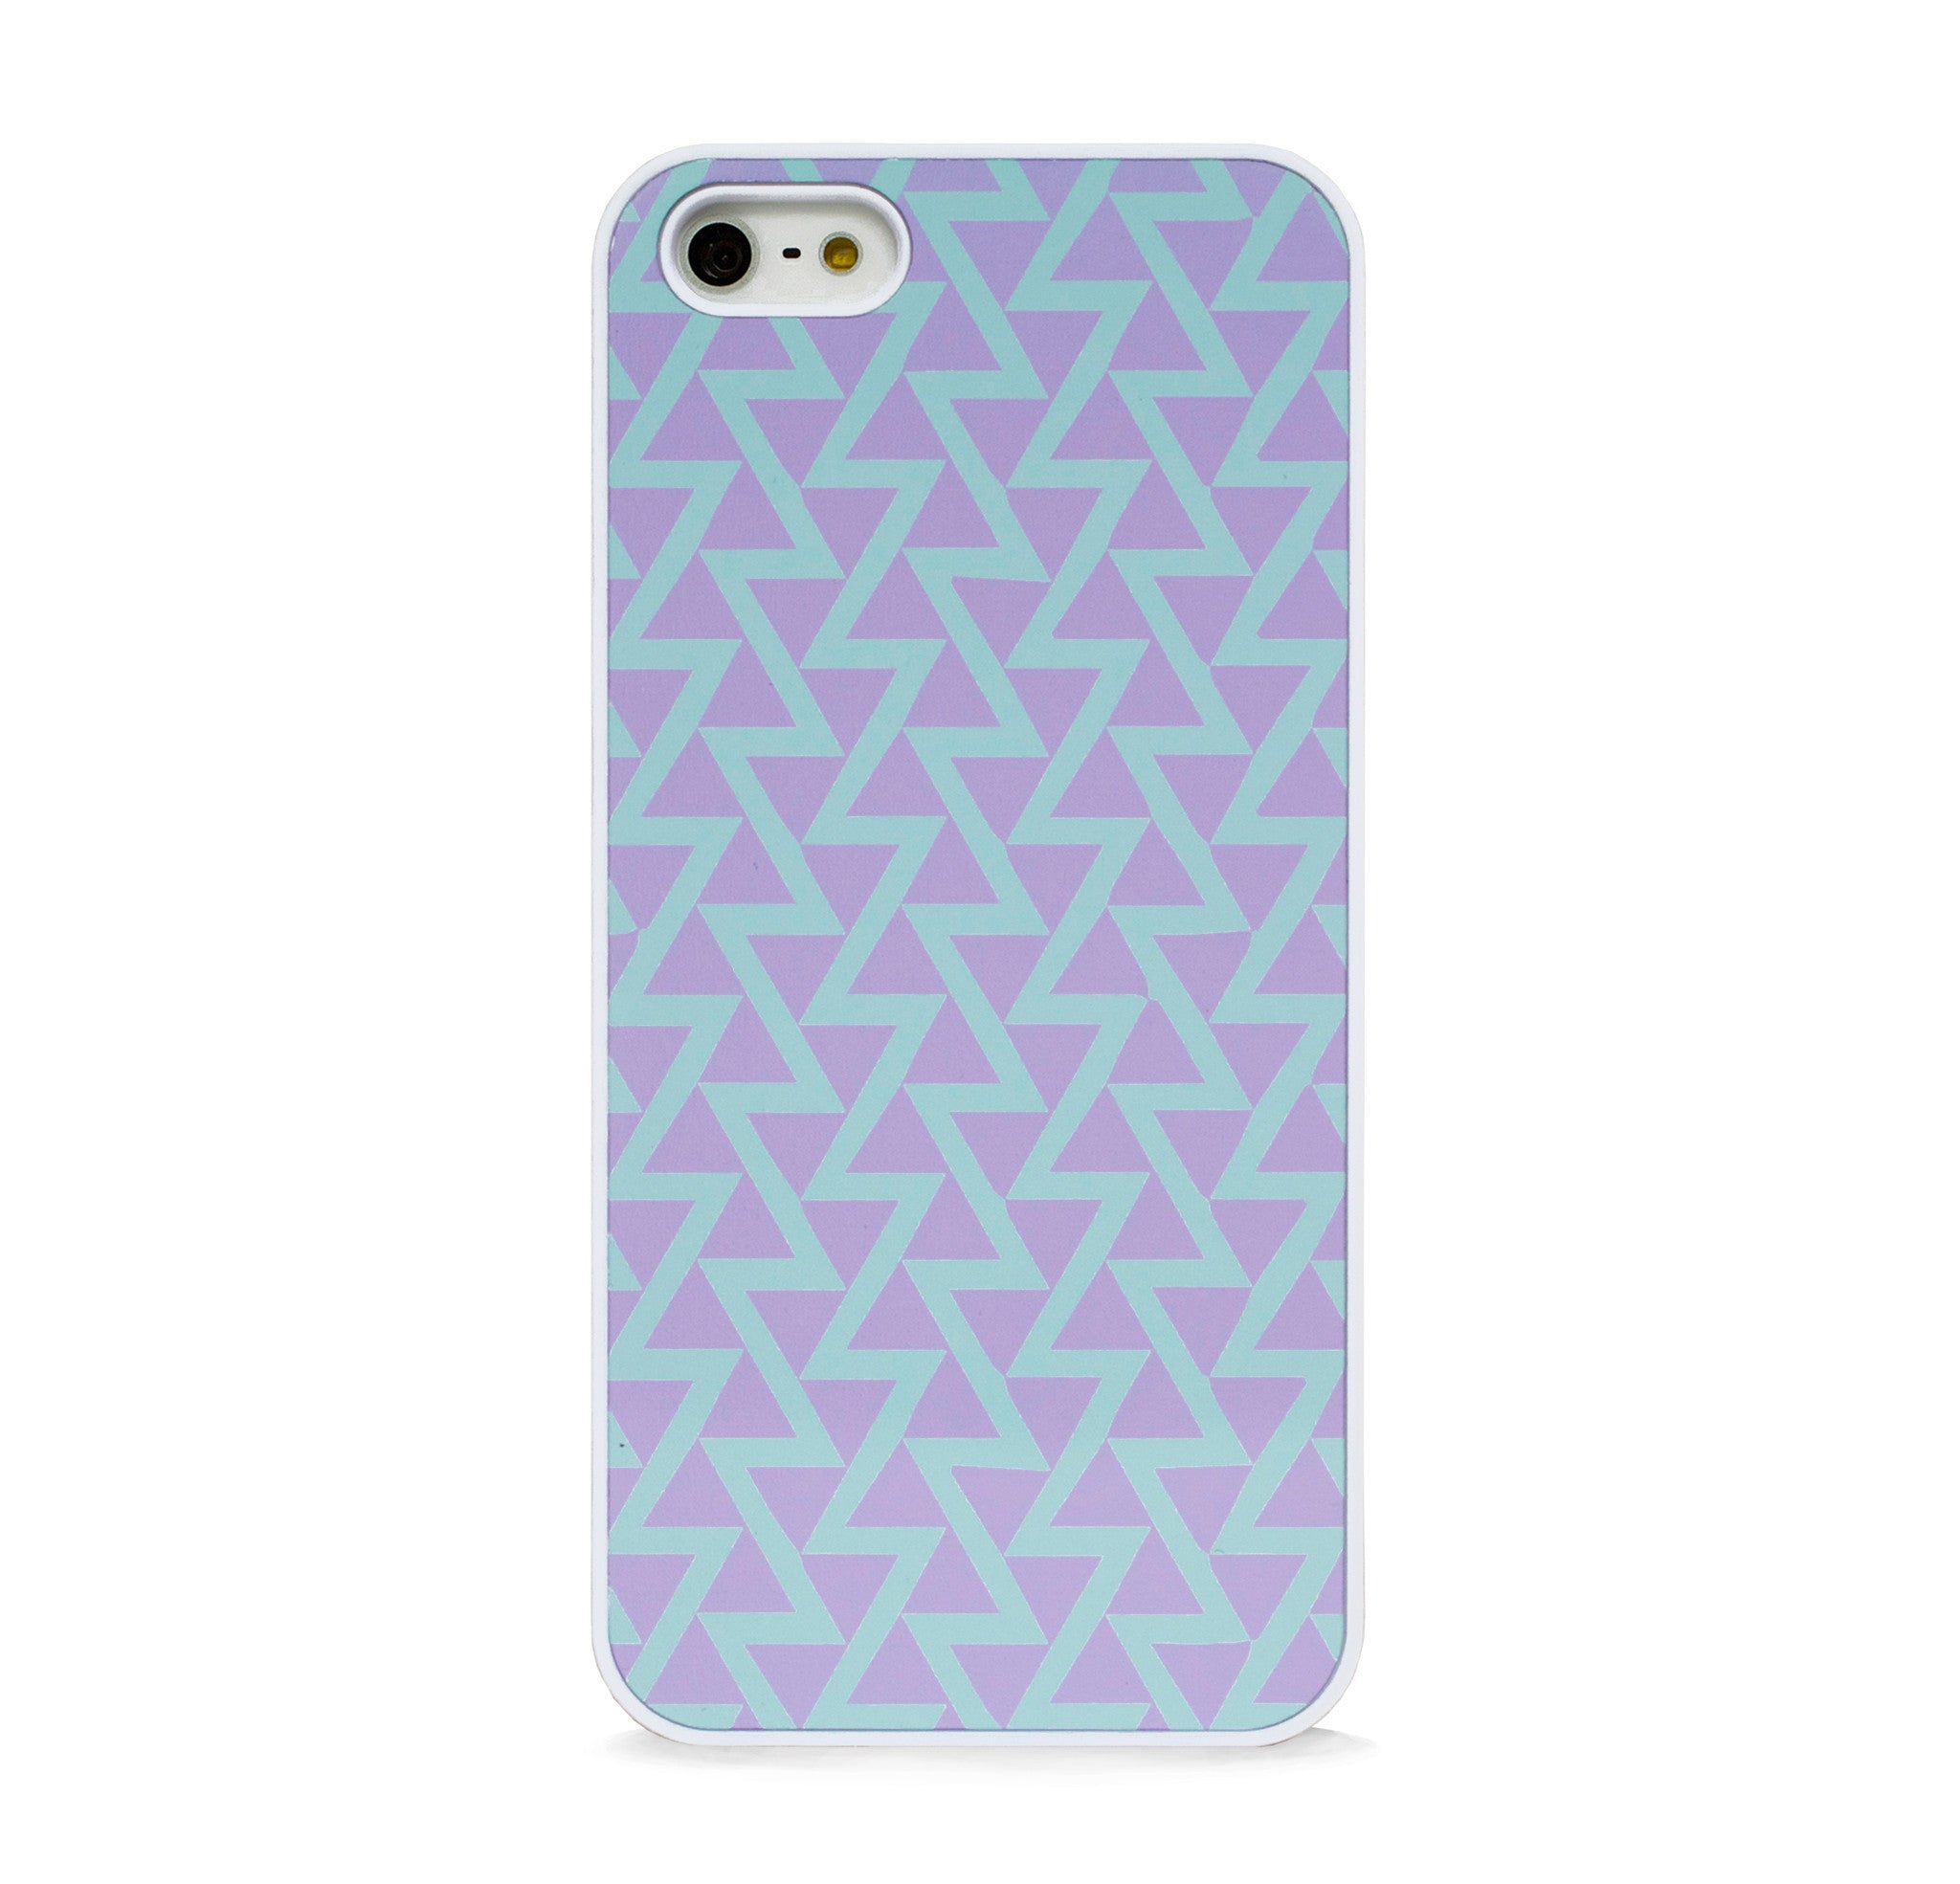 GEO TRIANGLE PURPLE FOR IPHONE 5/5S, IPHONE SE